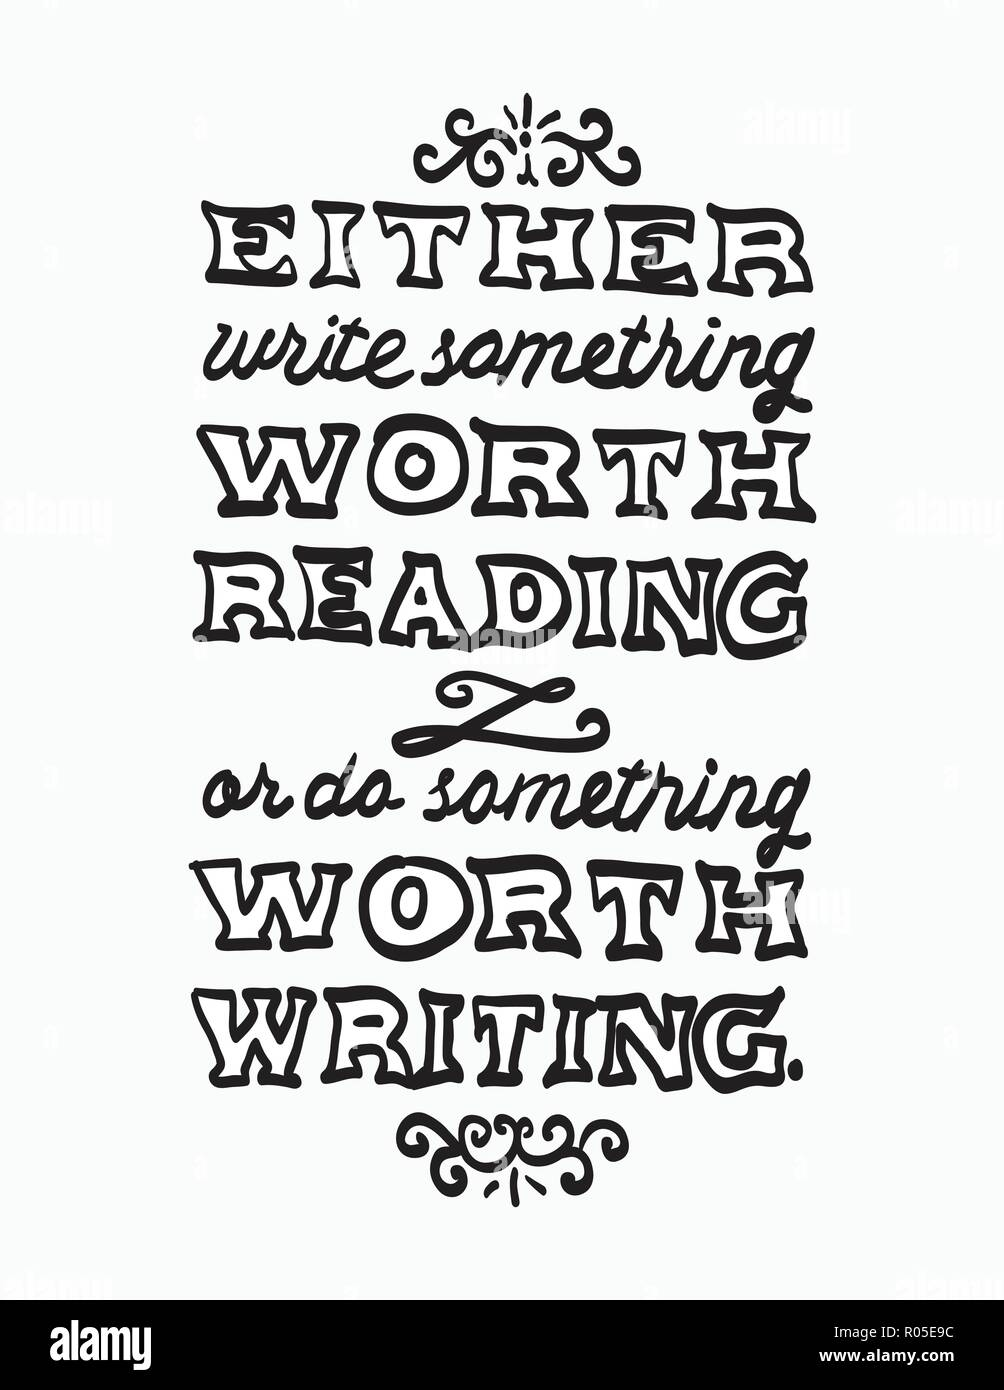 Black and white lettering illustration of Benjamin Franklin's quote 'Either write something worth reading or do something worth writing.' Can be used  - Stock Vector